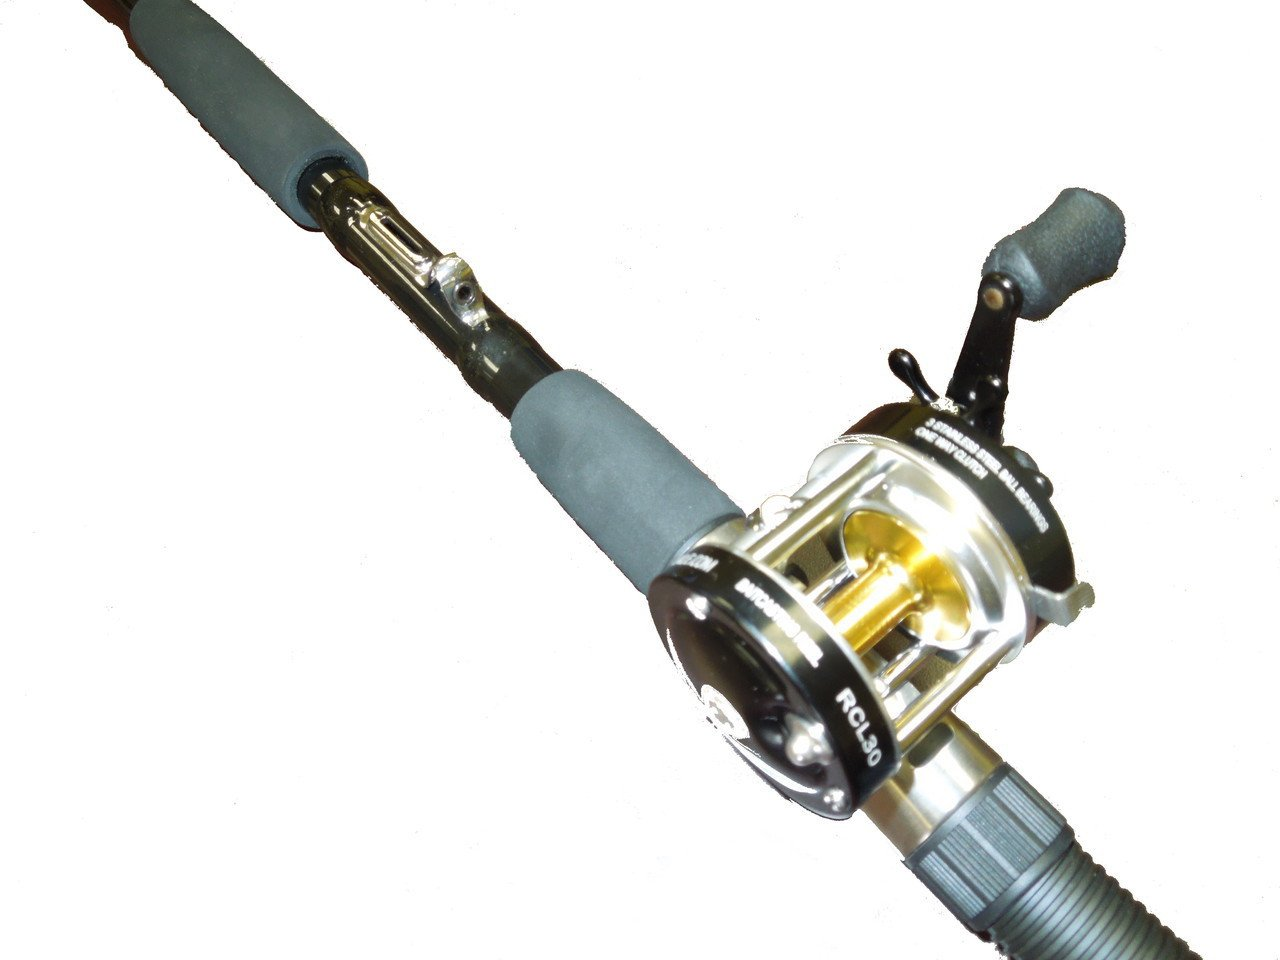 Sabiki 8 foot bait fishing rod bait caster fishing reel combo by EAT MY TACKLE